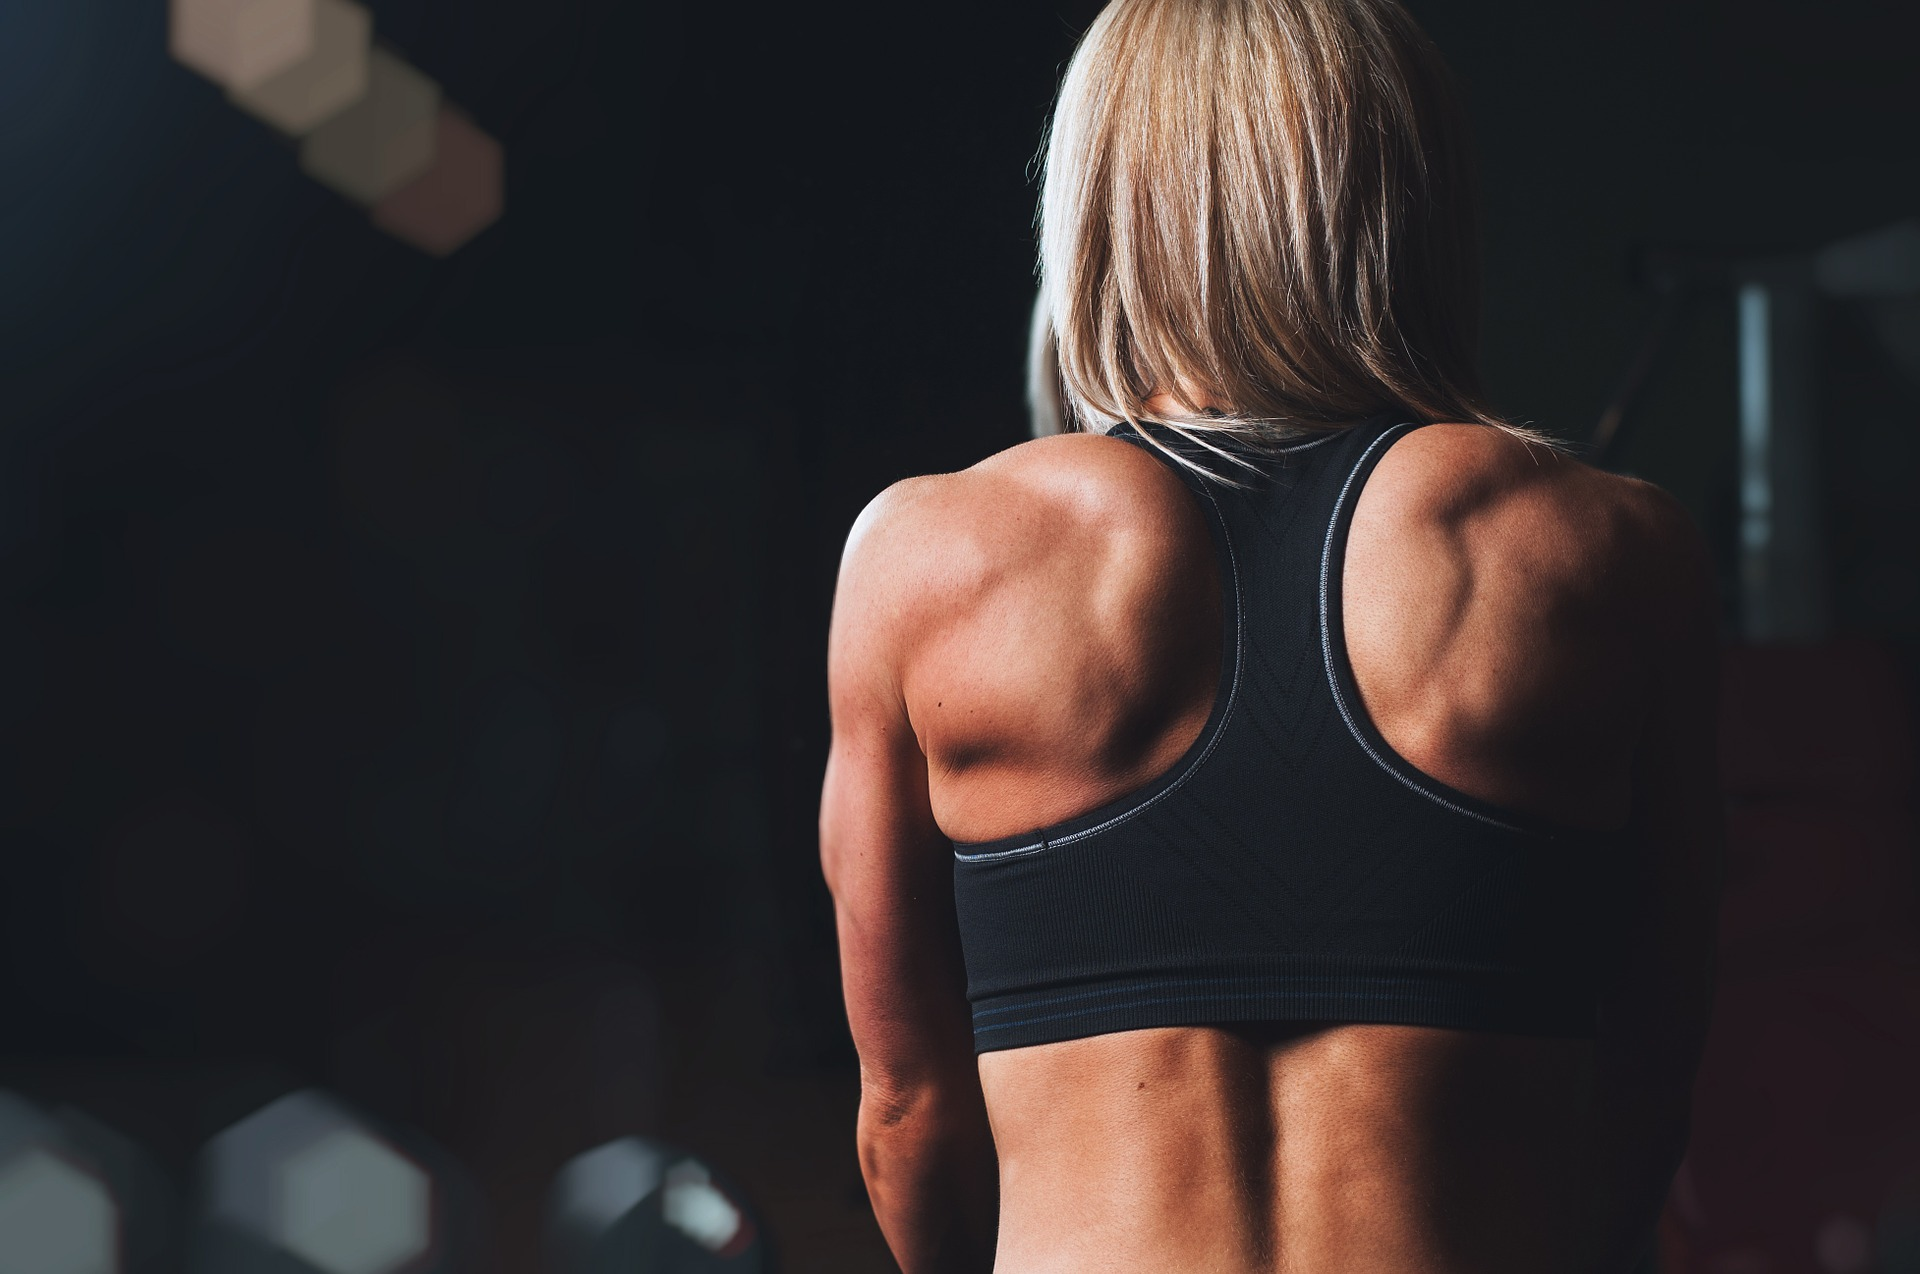 Women Gym Workout Images 5